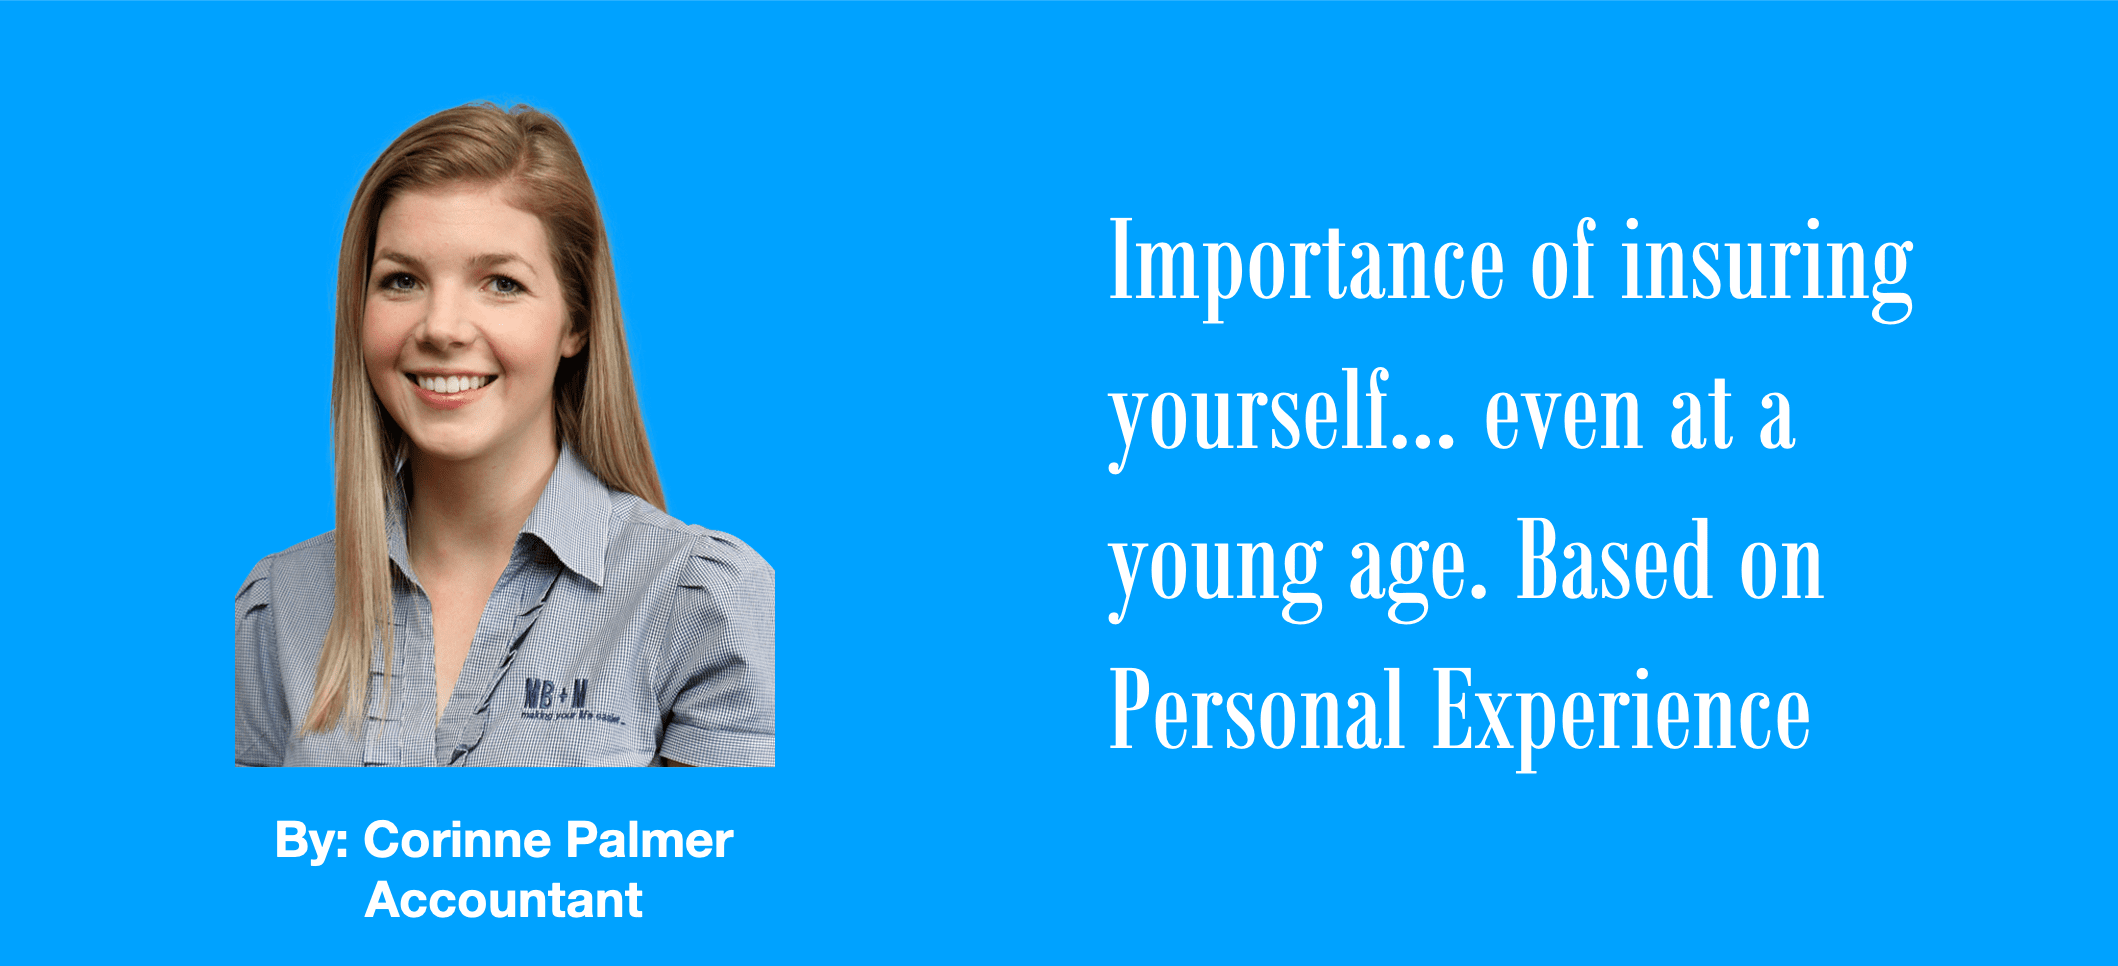 Importance of insuring yourself… even at a young age. Based on Personal Experience